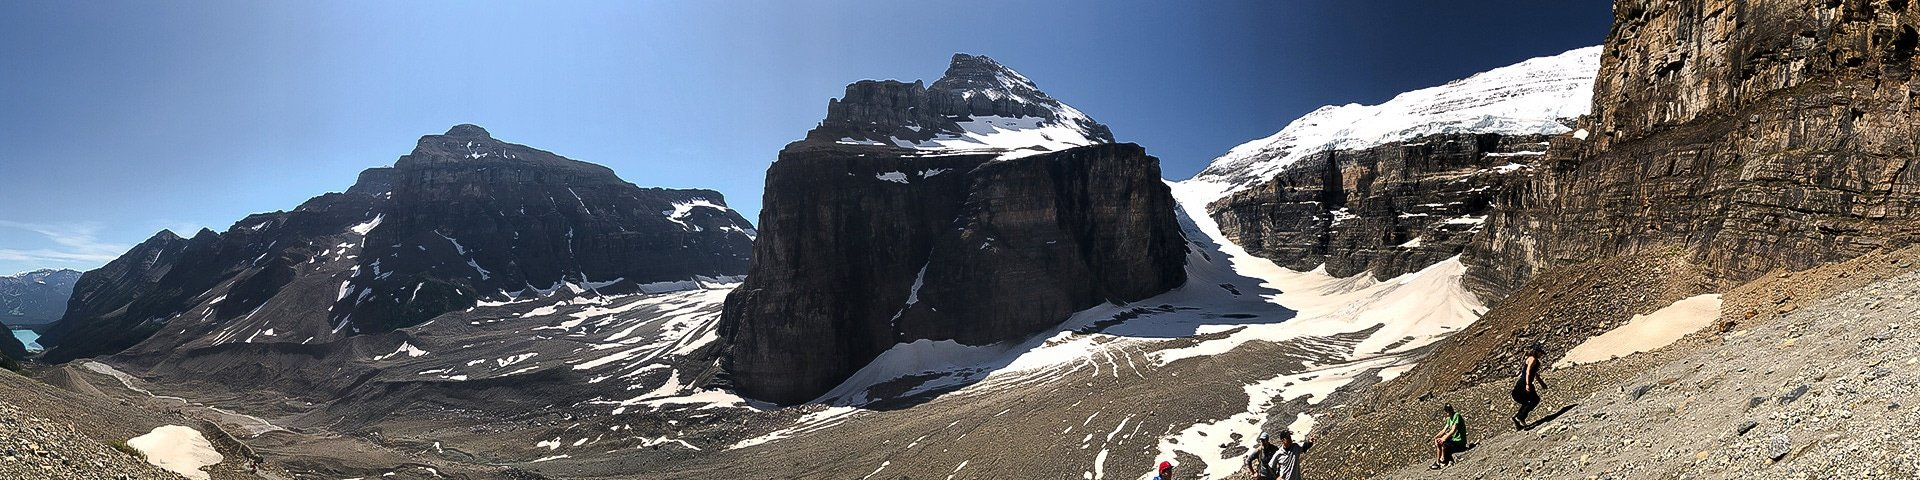 Panorama of the Plain of the Six Glaciers hike in Lake Louise, Banff National Park, Alberta